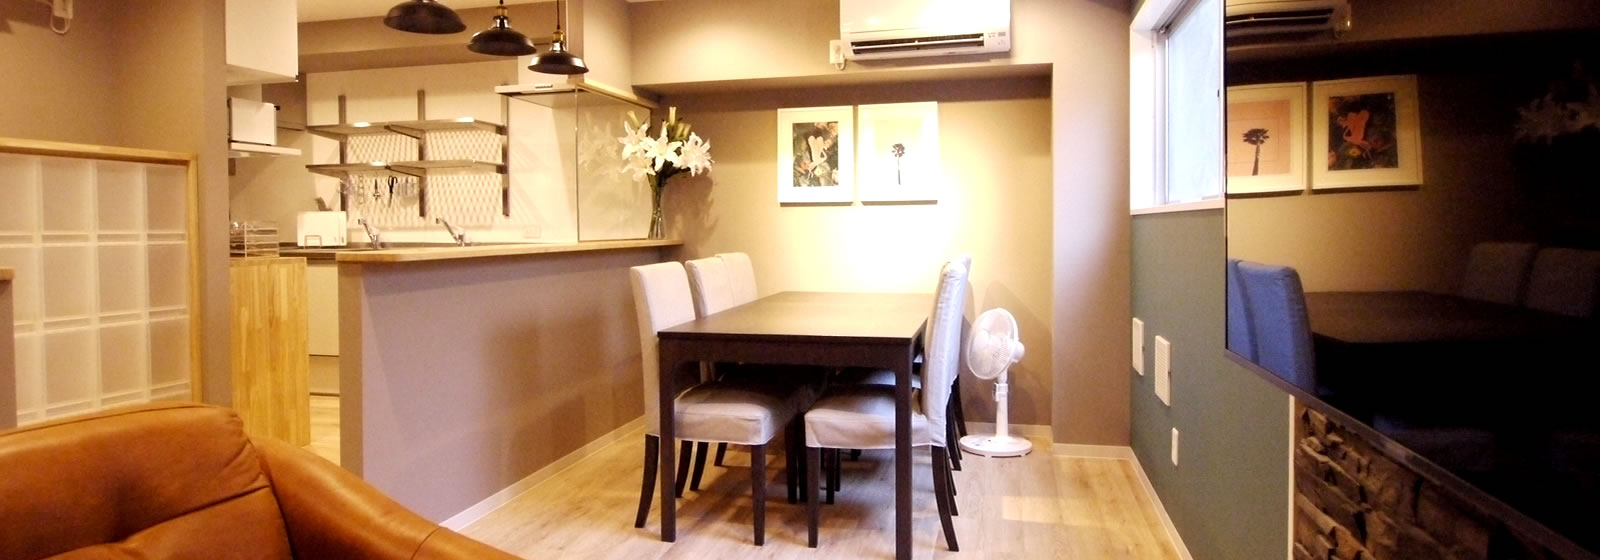 Couverture KinshichoⅡ JR, Metro 2 accessible & private rooms with shower. 58,000 yen to 76,000 yen